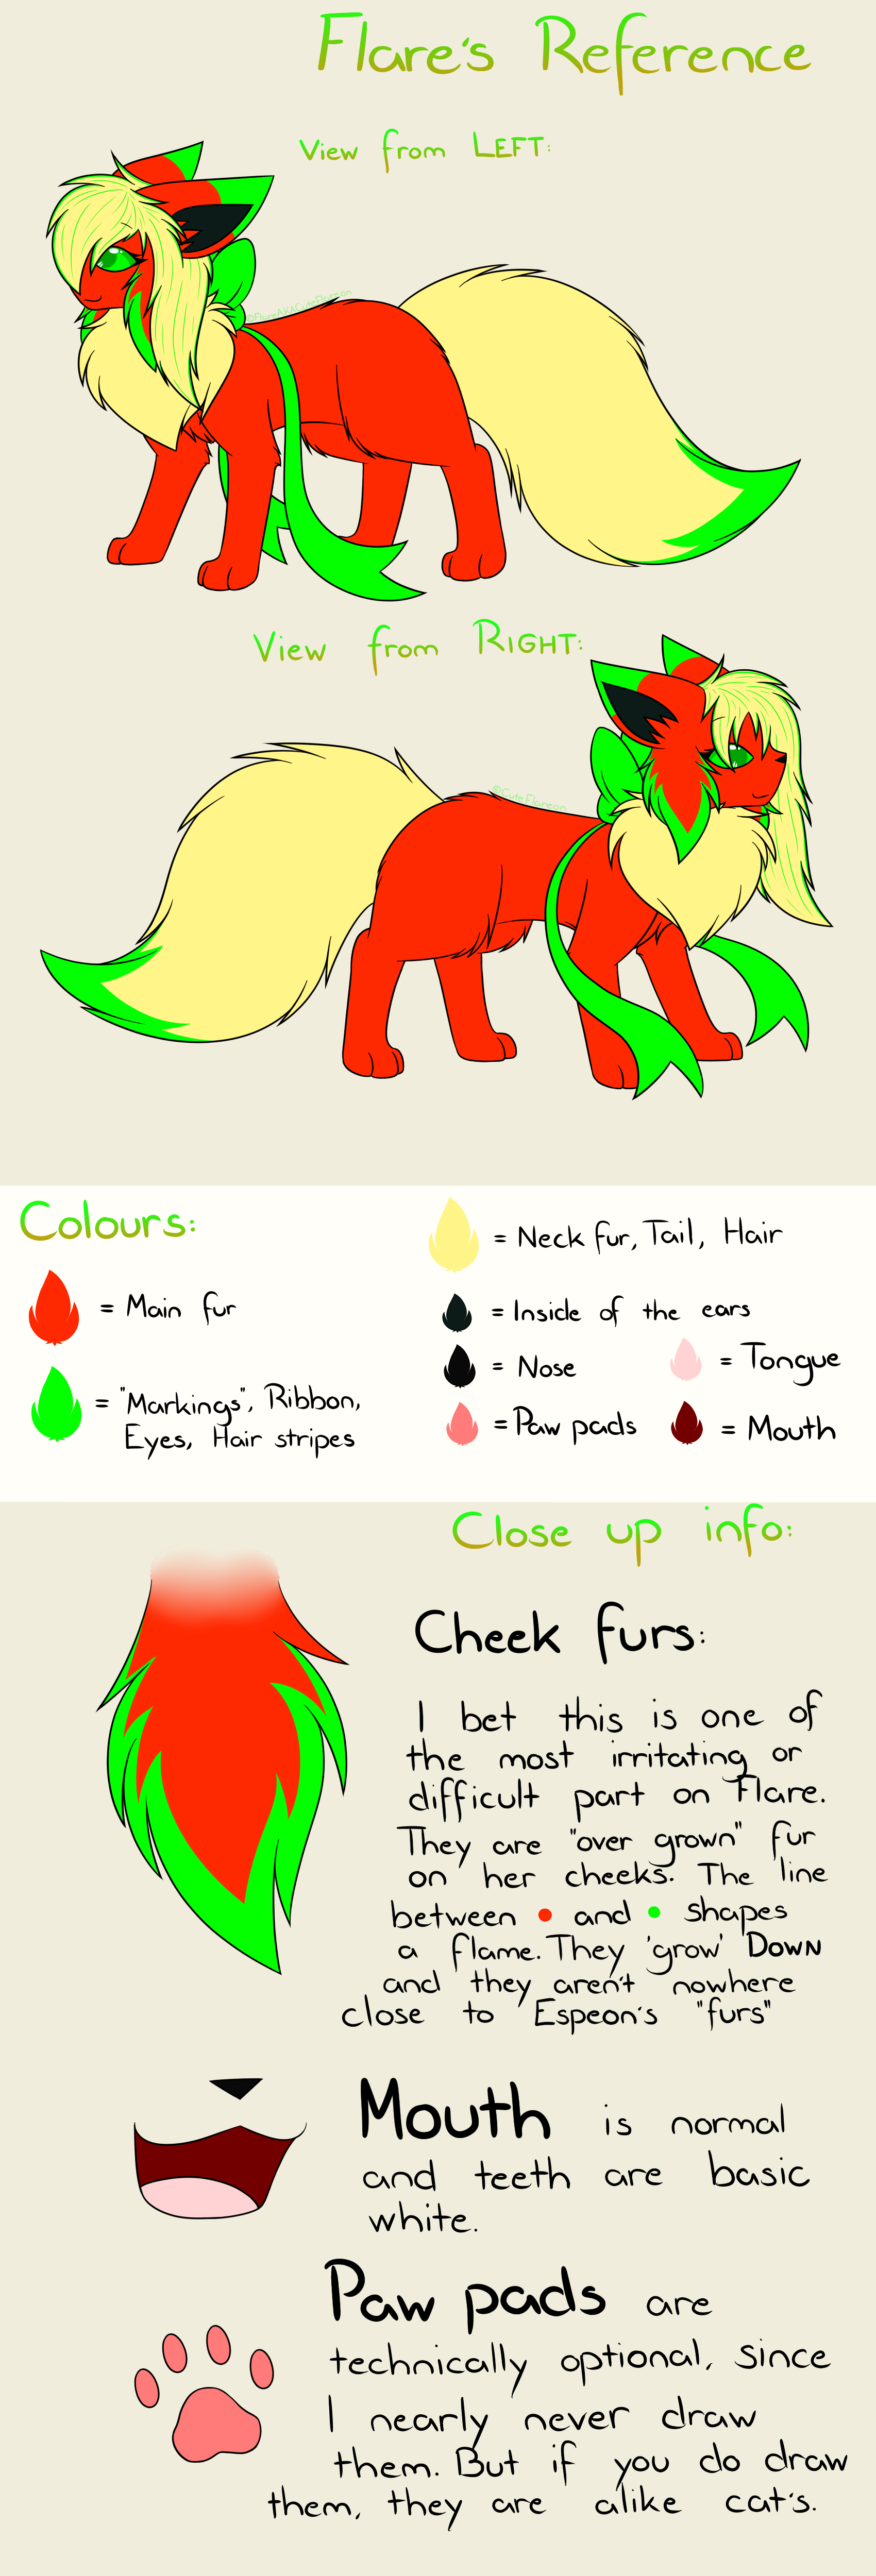 Flare's Reference sheet